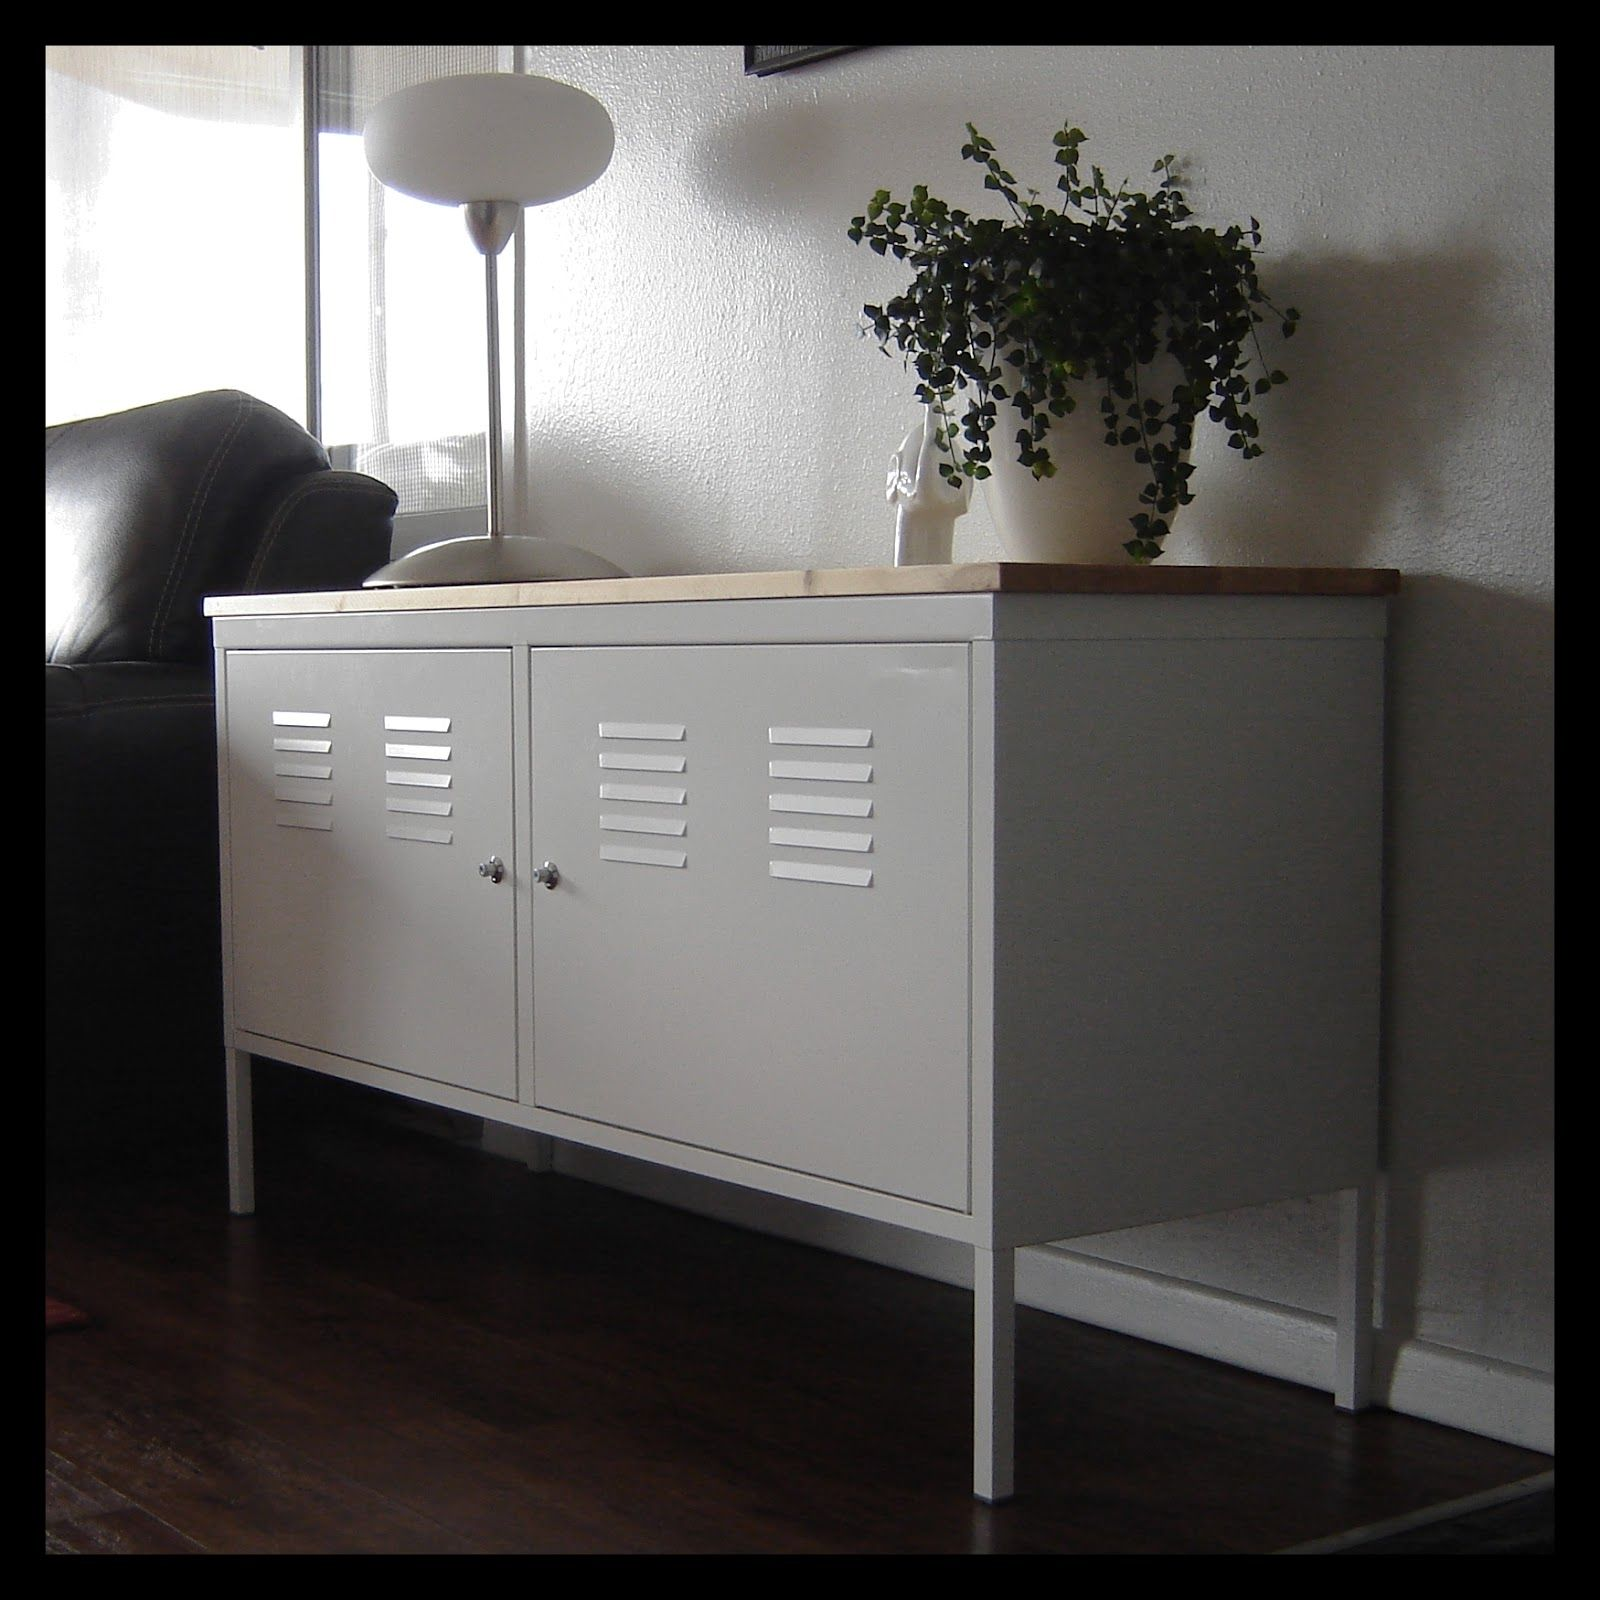 Ikea Ps Best 25 43 Ikea Ps Cabinet Ideas On Pinterest M Dreams